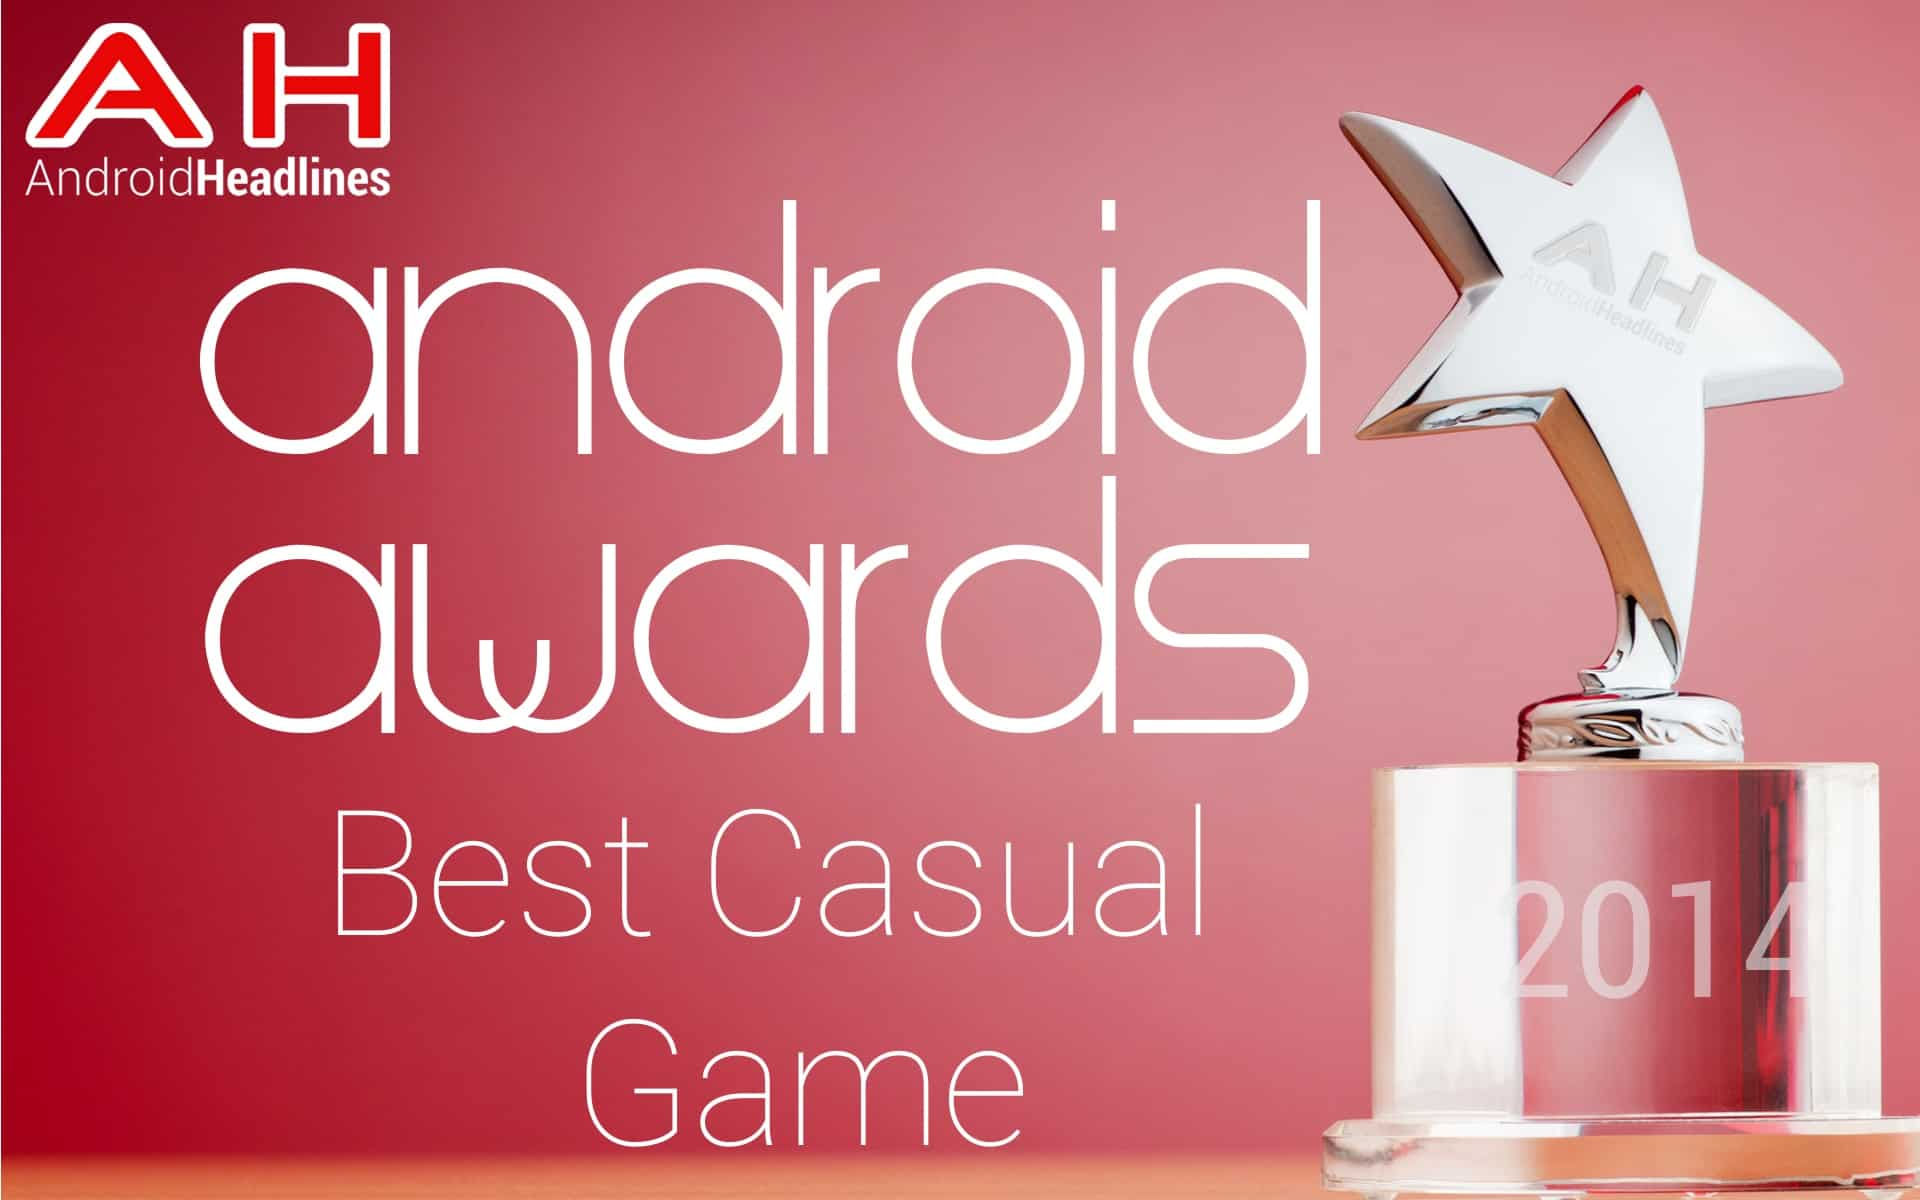 AH Awards 2015 Best Casual Game Android